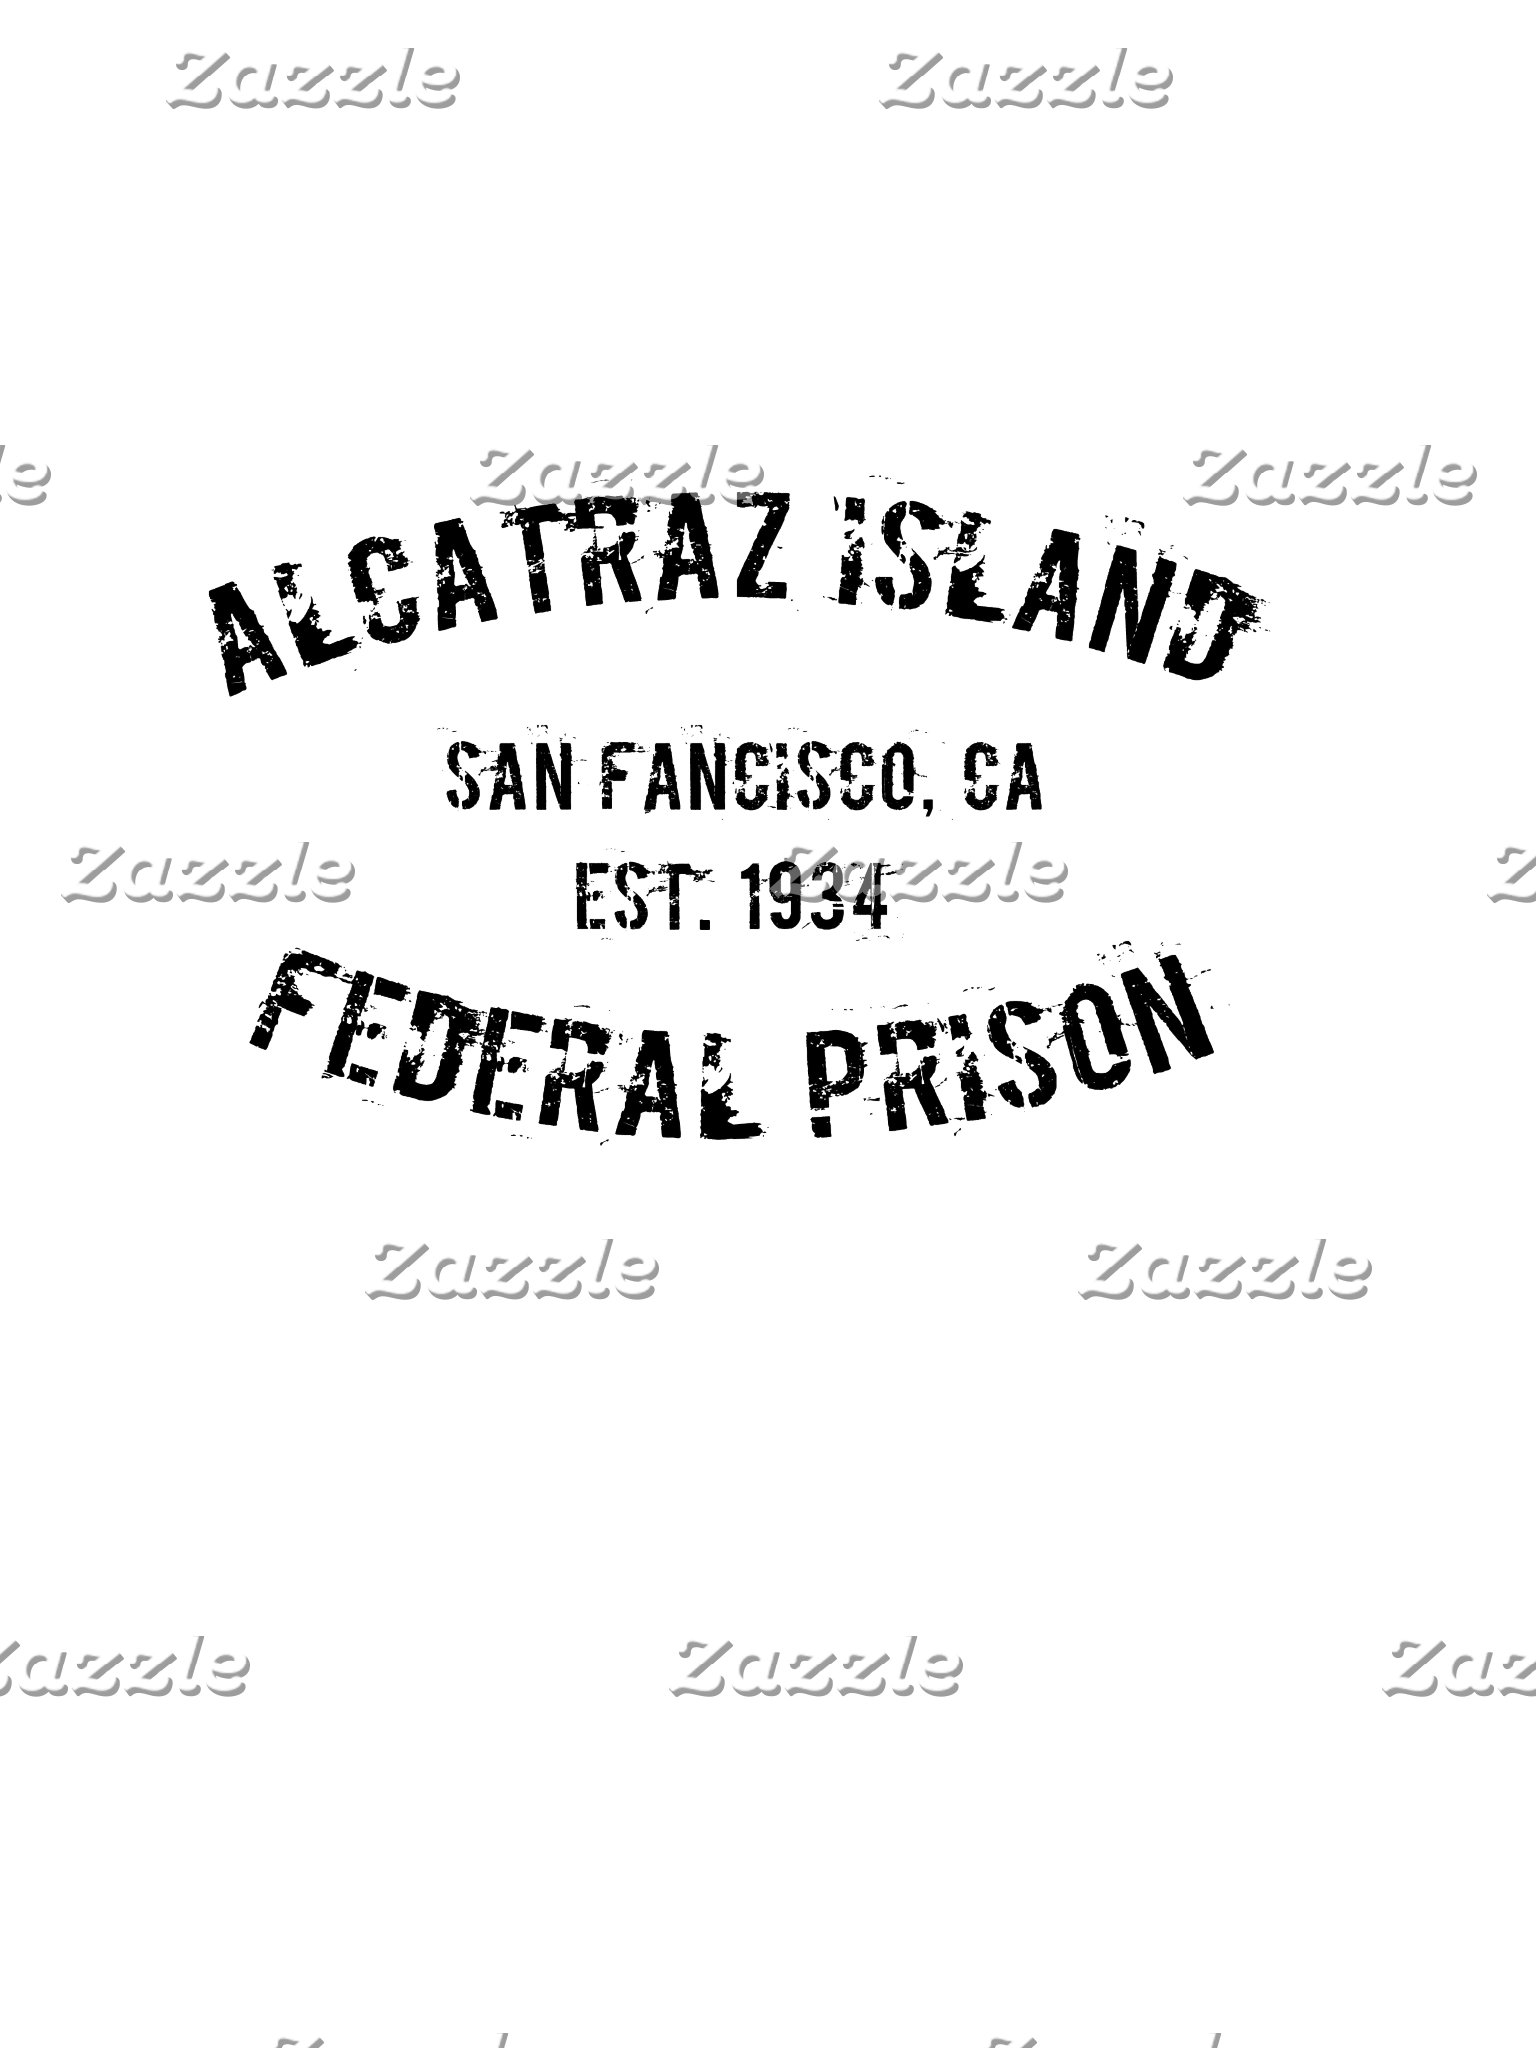 Prisoner of Alcatraz